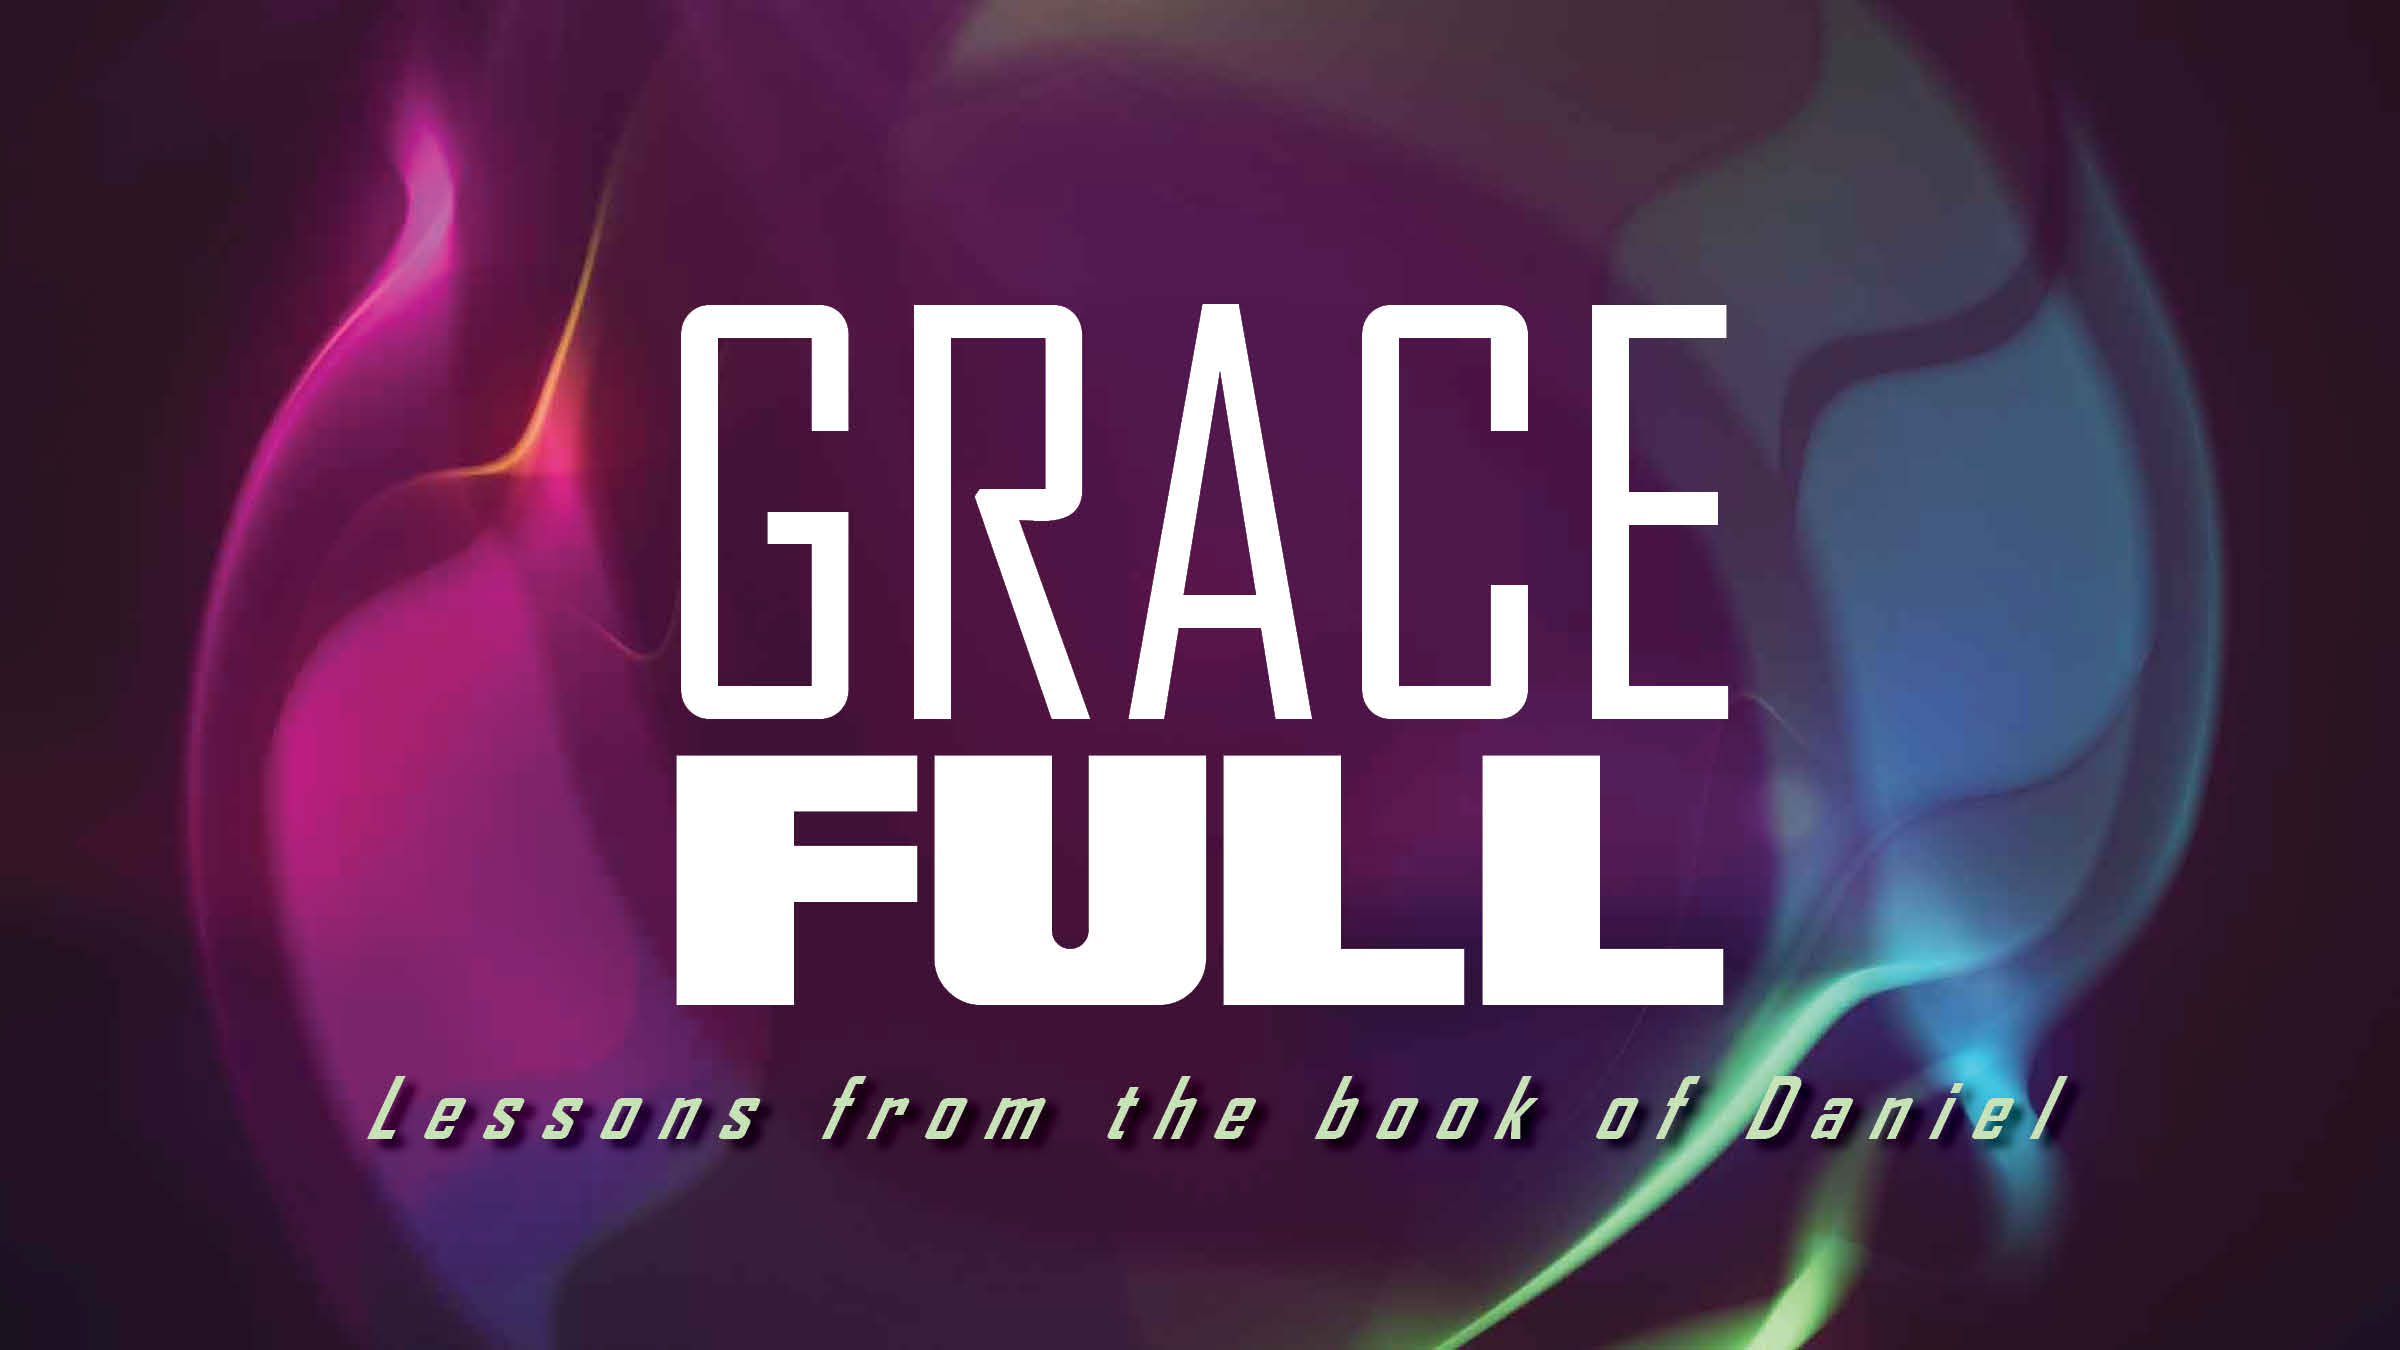 11 20 16 Grace Full By Mitch Wilburn